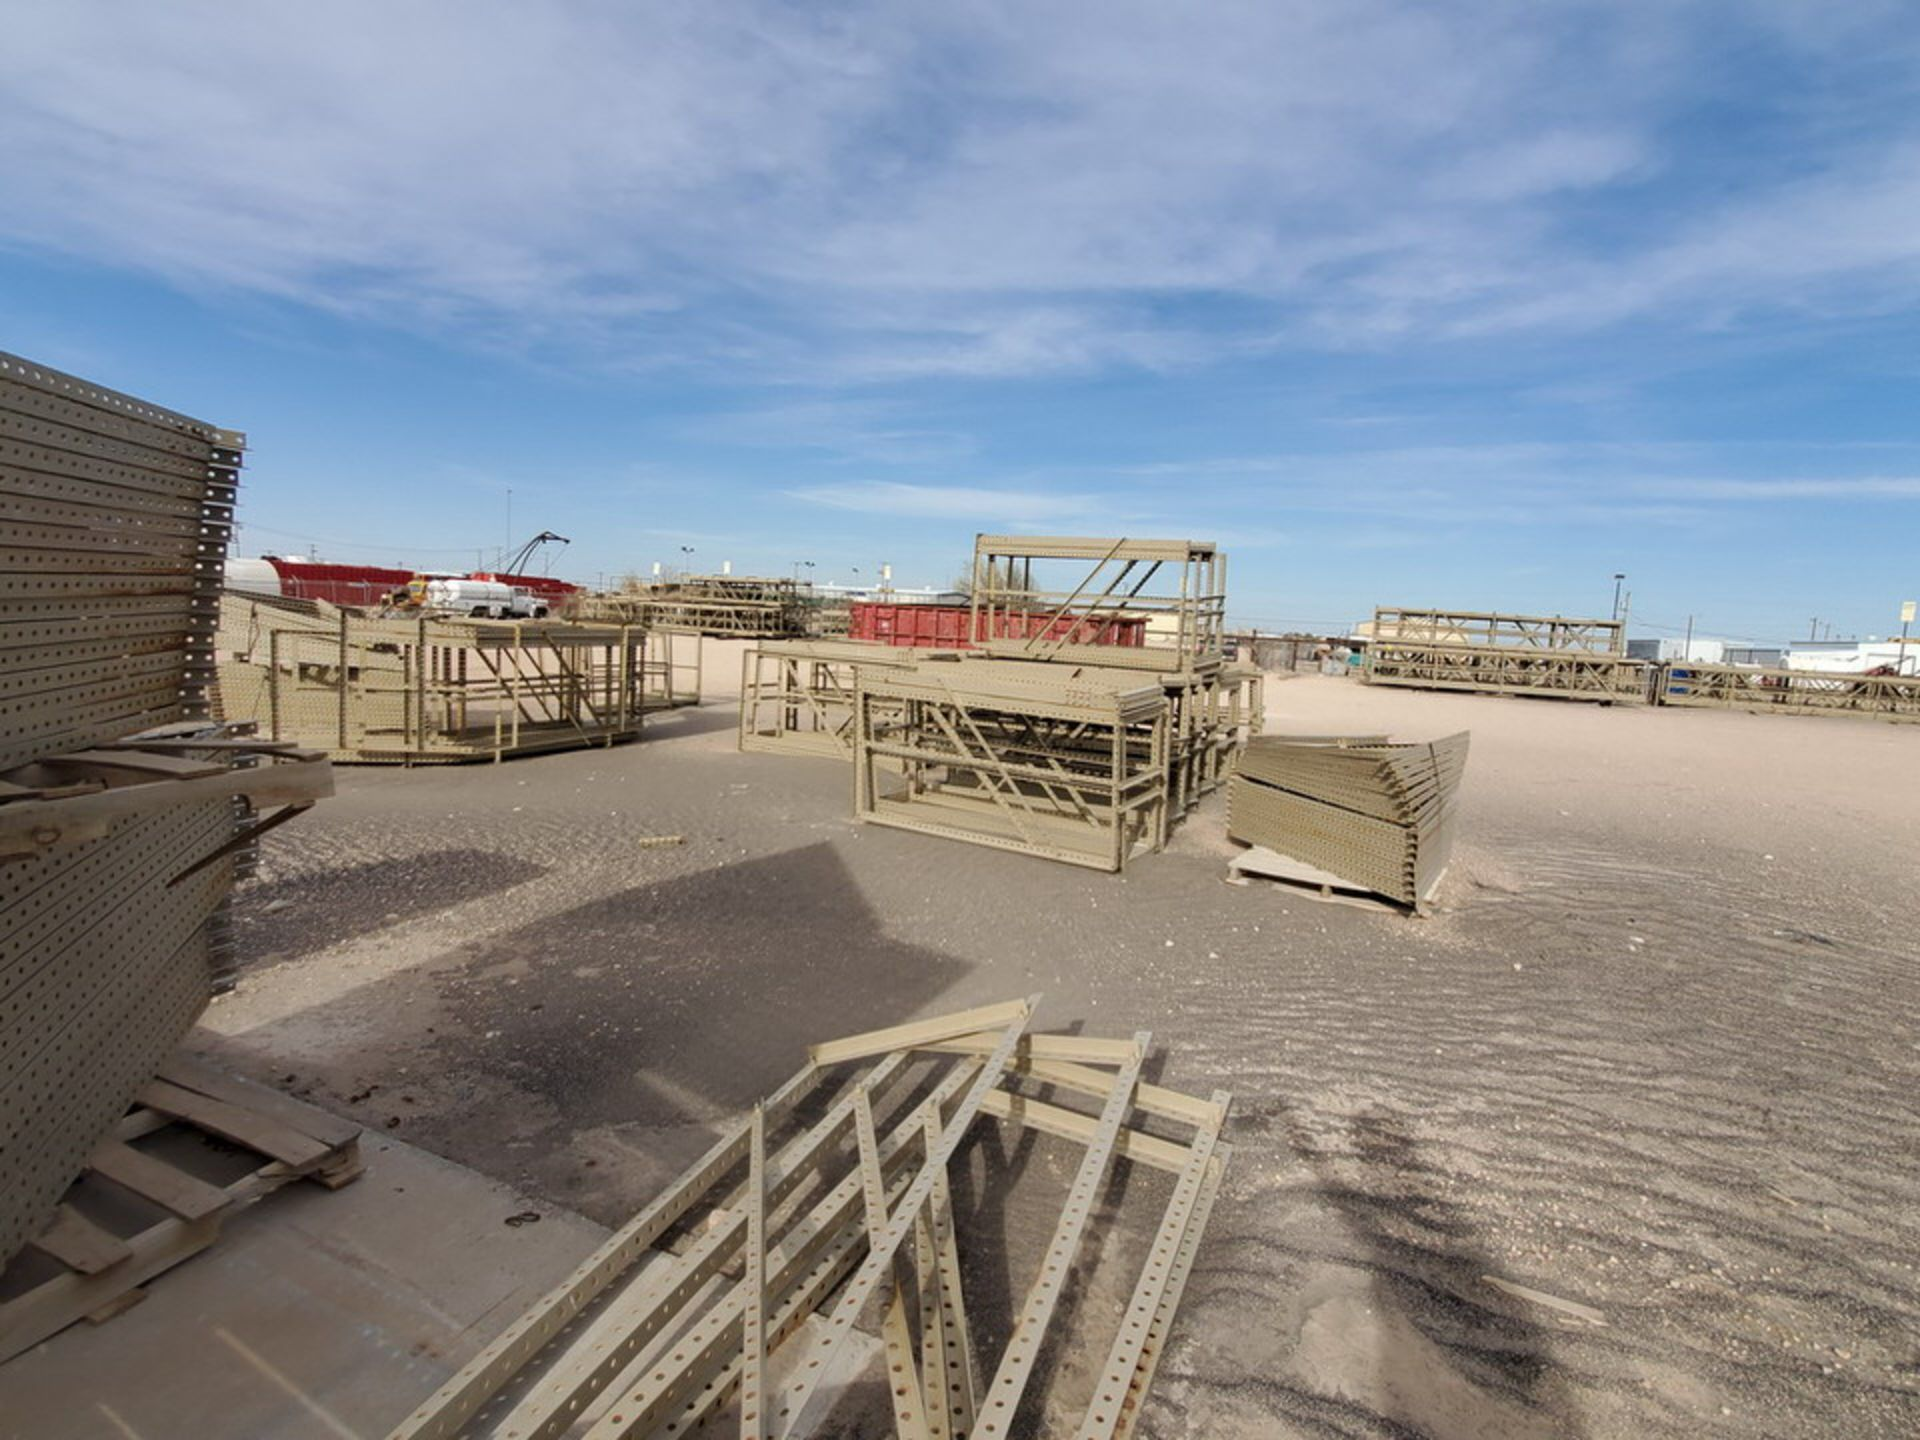 Disassembled Catwalk Sections - Image 7 of 20